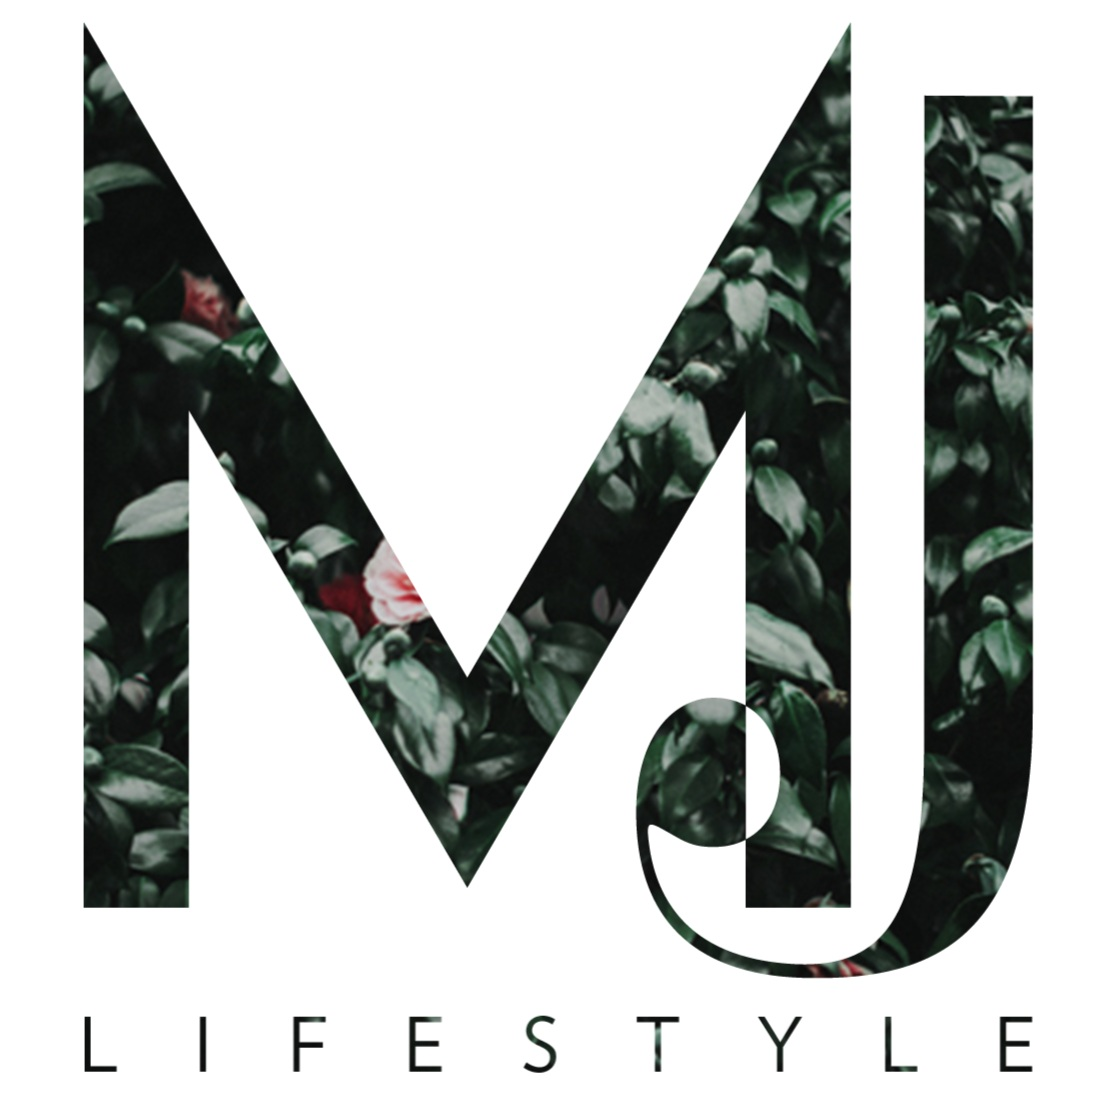 MJ Lifestyle Magazine